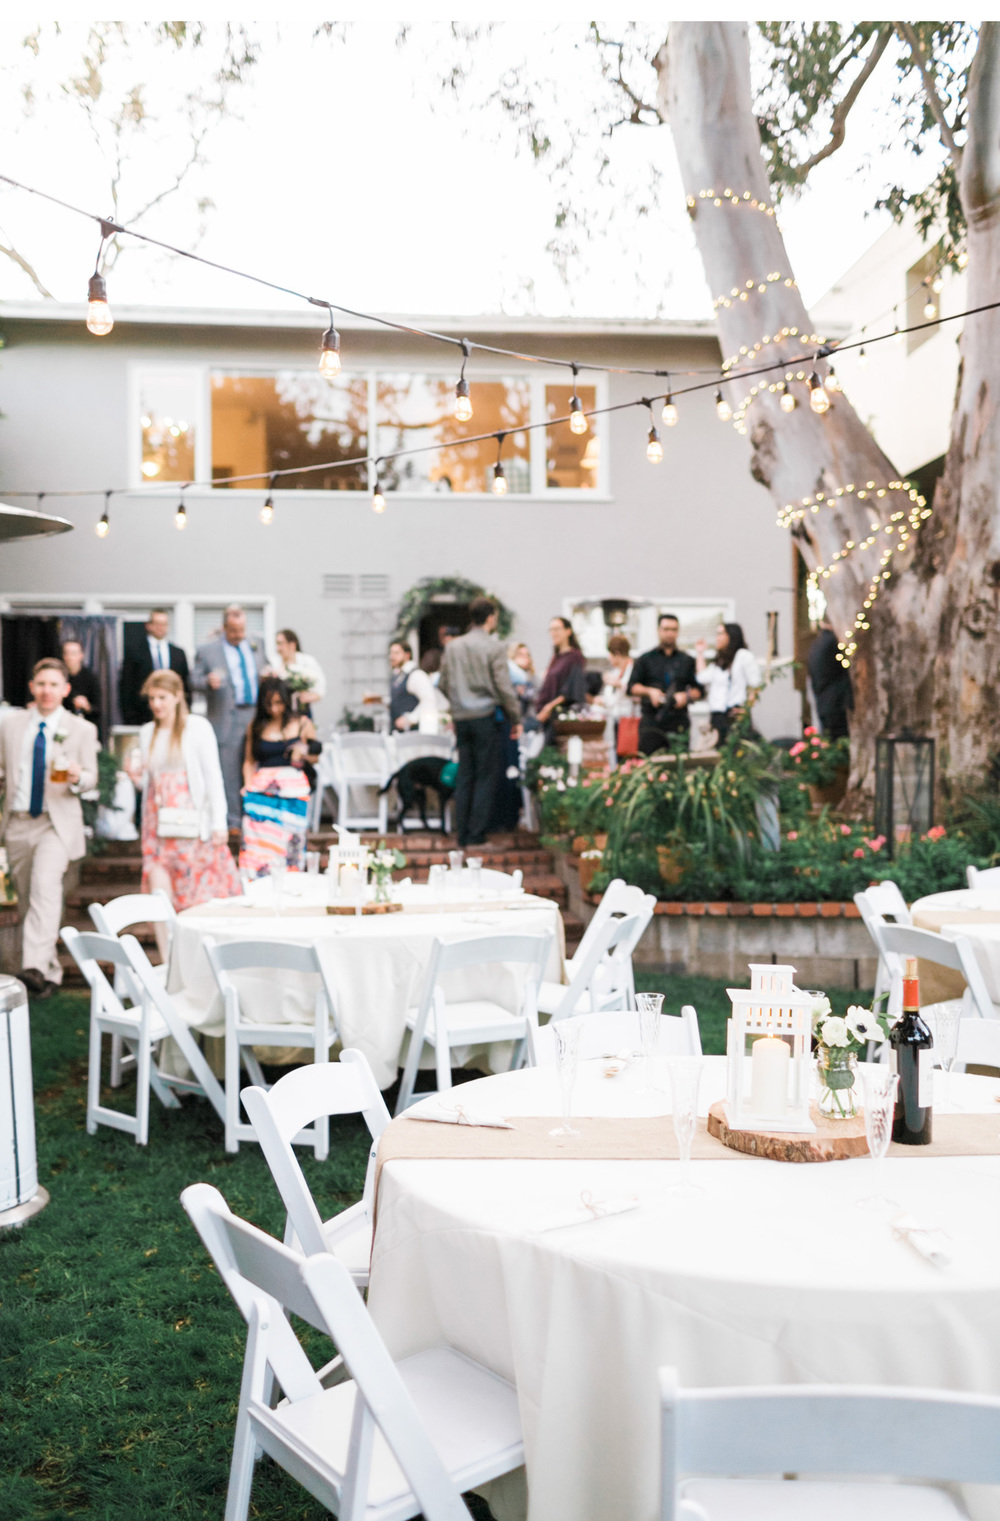 Natalie-Schutt-Photography-Backyard-Wedding-_03.jpg